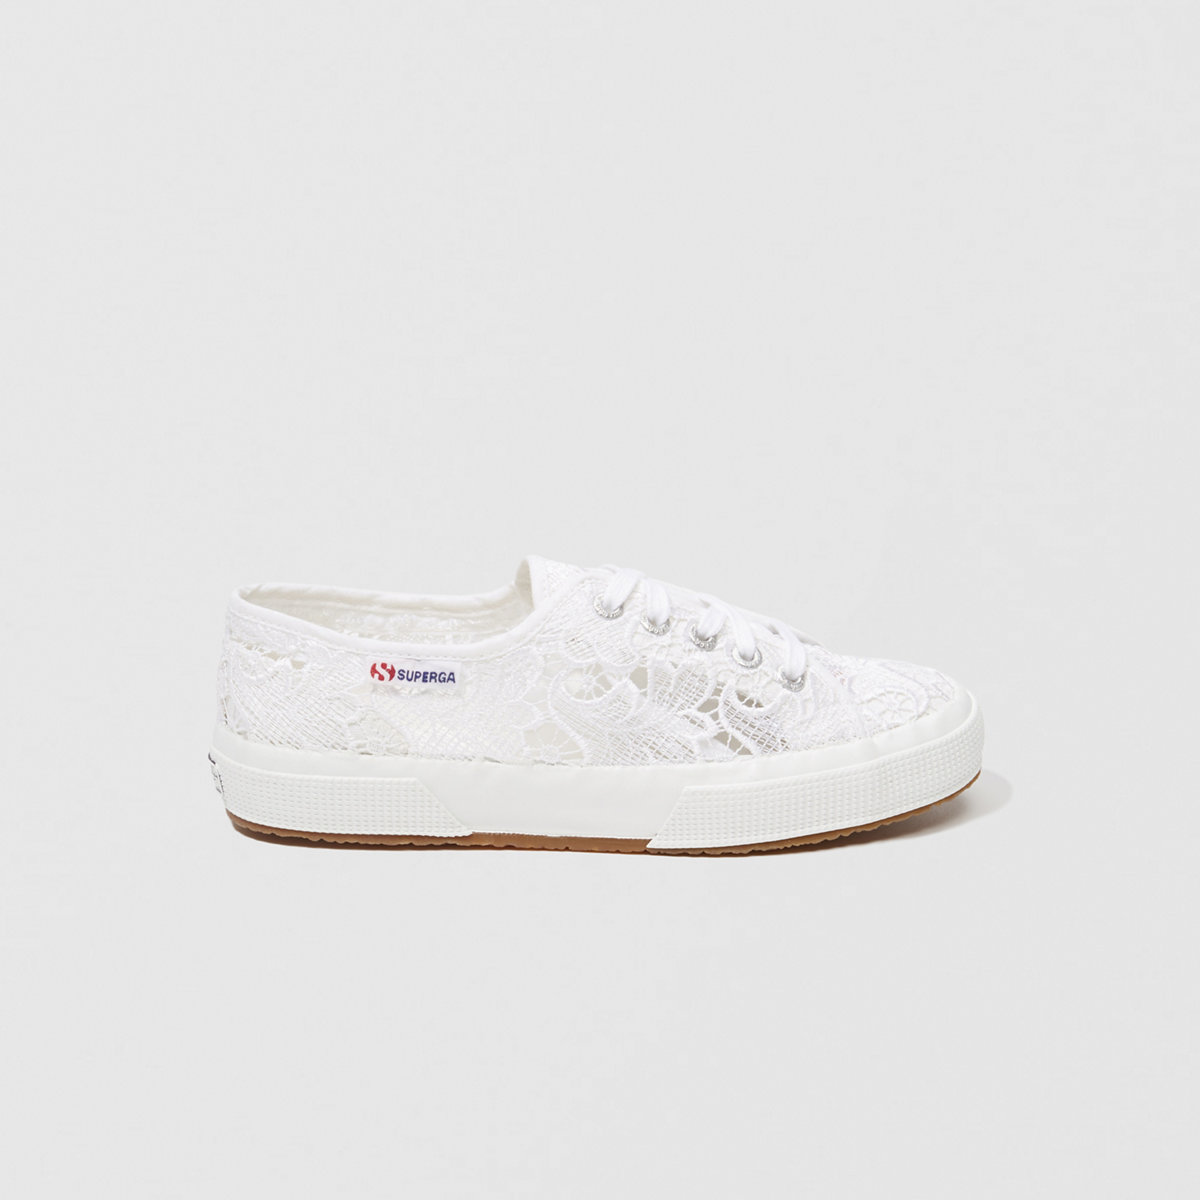 Superga 2750 Macrame Sneakers